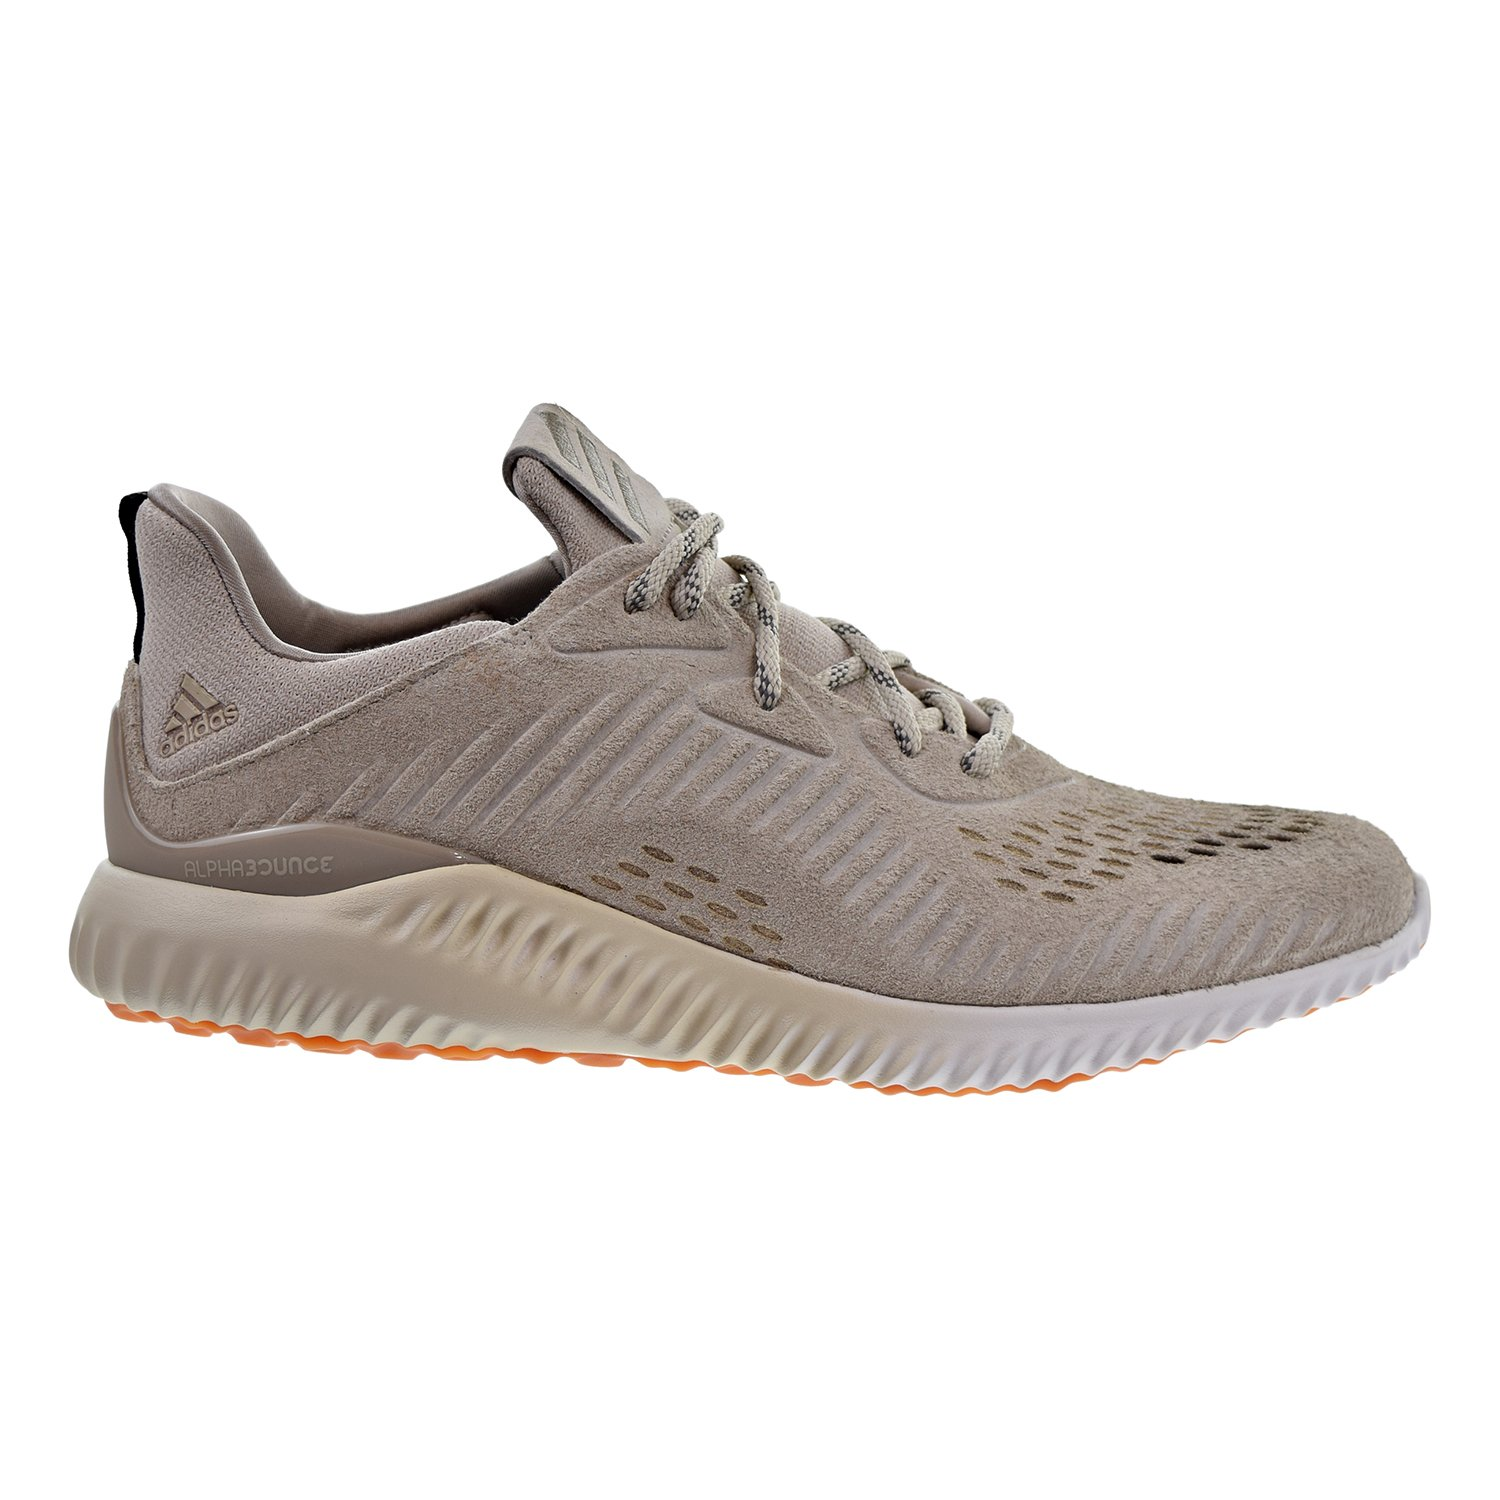 Femme Homme Alphabounce Chaussures Adidas Hommes 1Uwqvwfp5